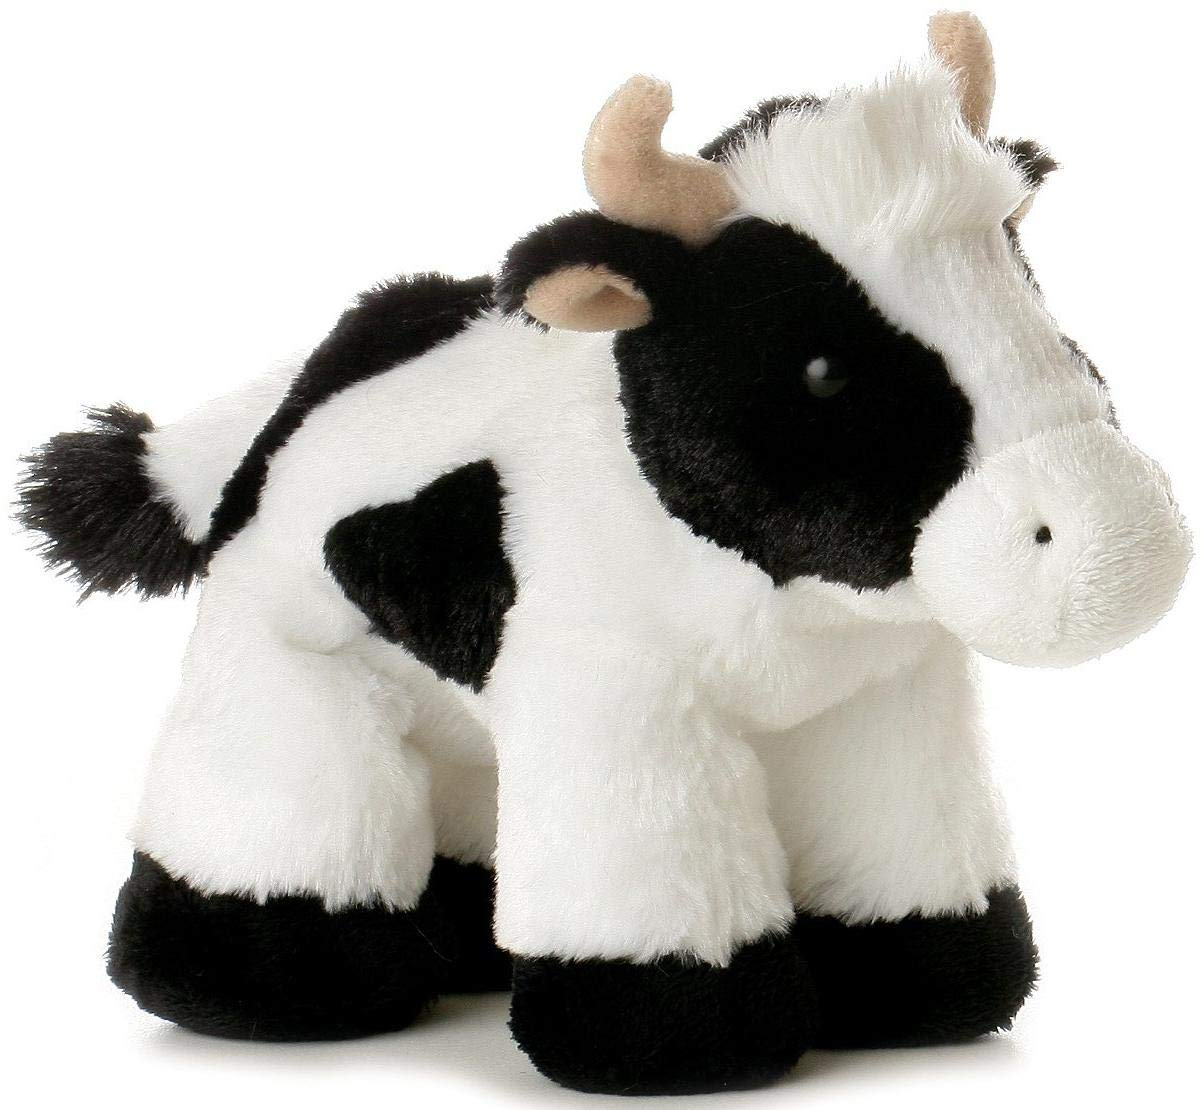 Mini Moo Cow Plush Soft Toy Animal My First Teddy Bear For Girls /& Boys Popular Mini Flopsie Great Gift Idea